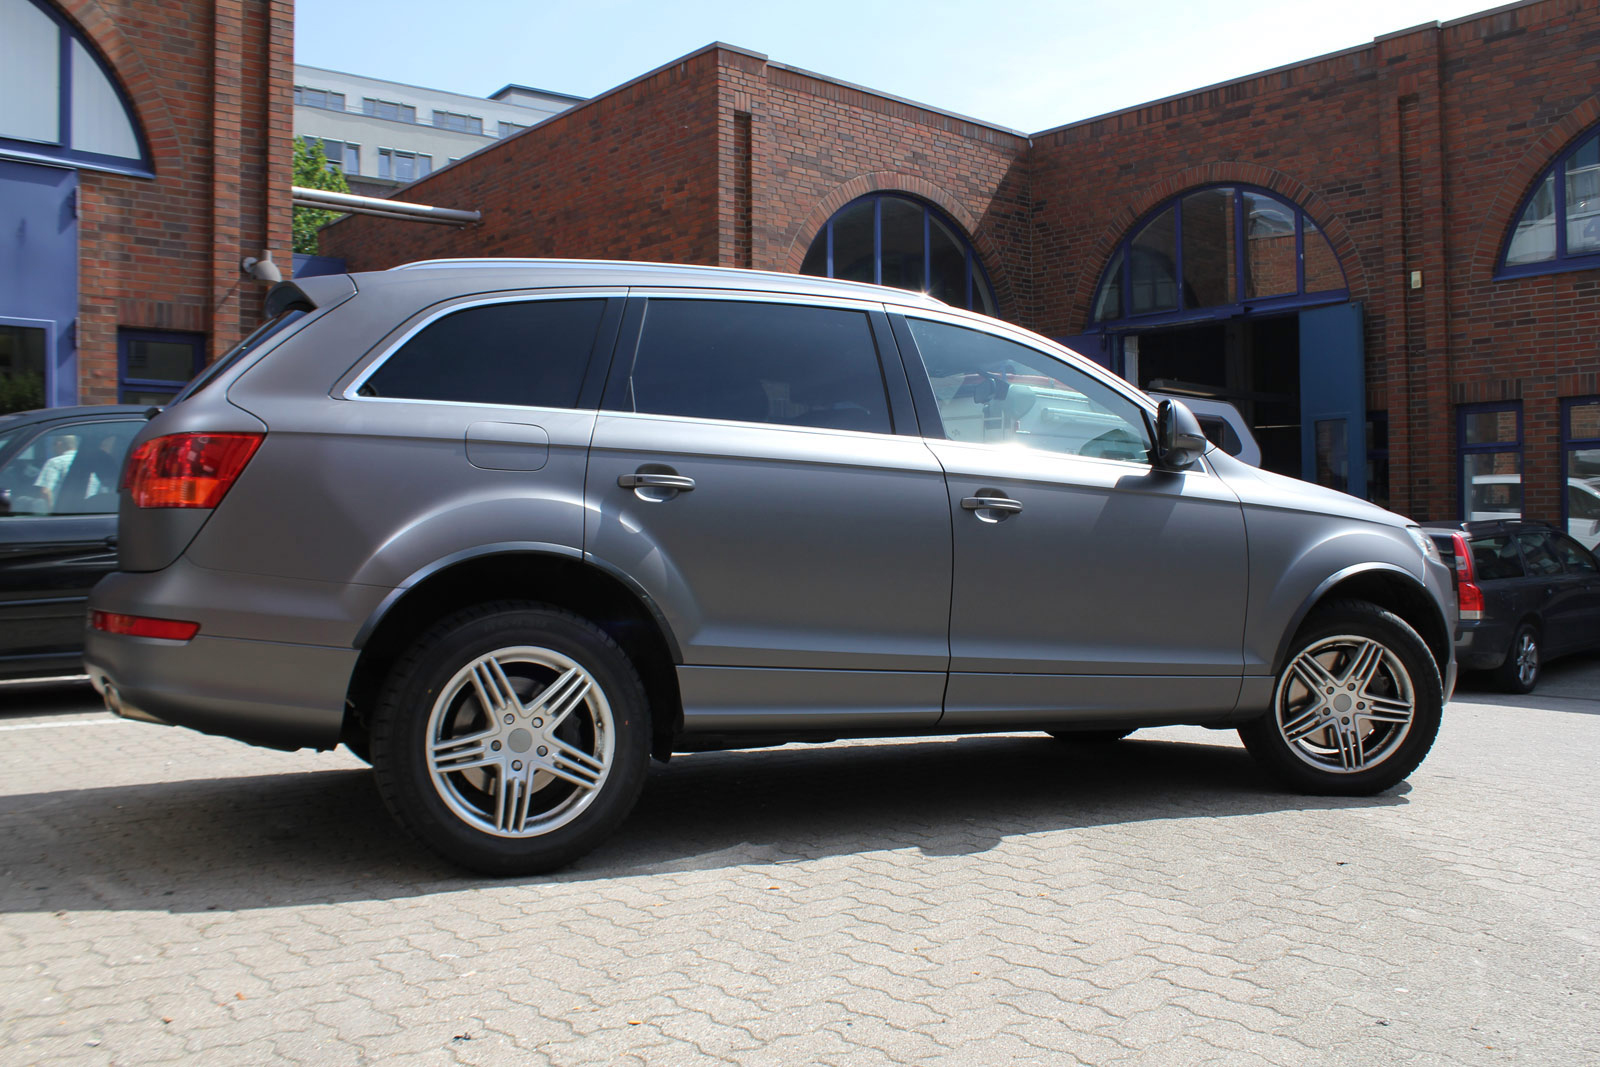 AUDI_Q7_ANTHRAZIT_MATT_METALLIC_06